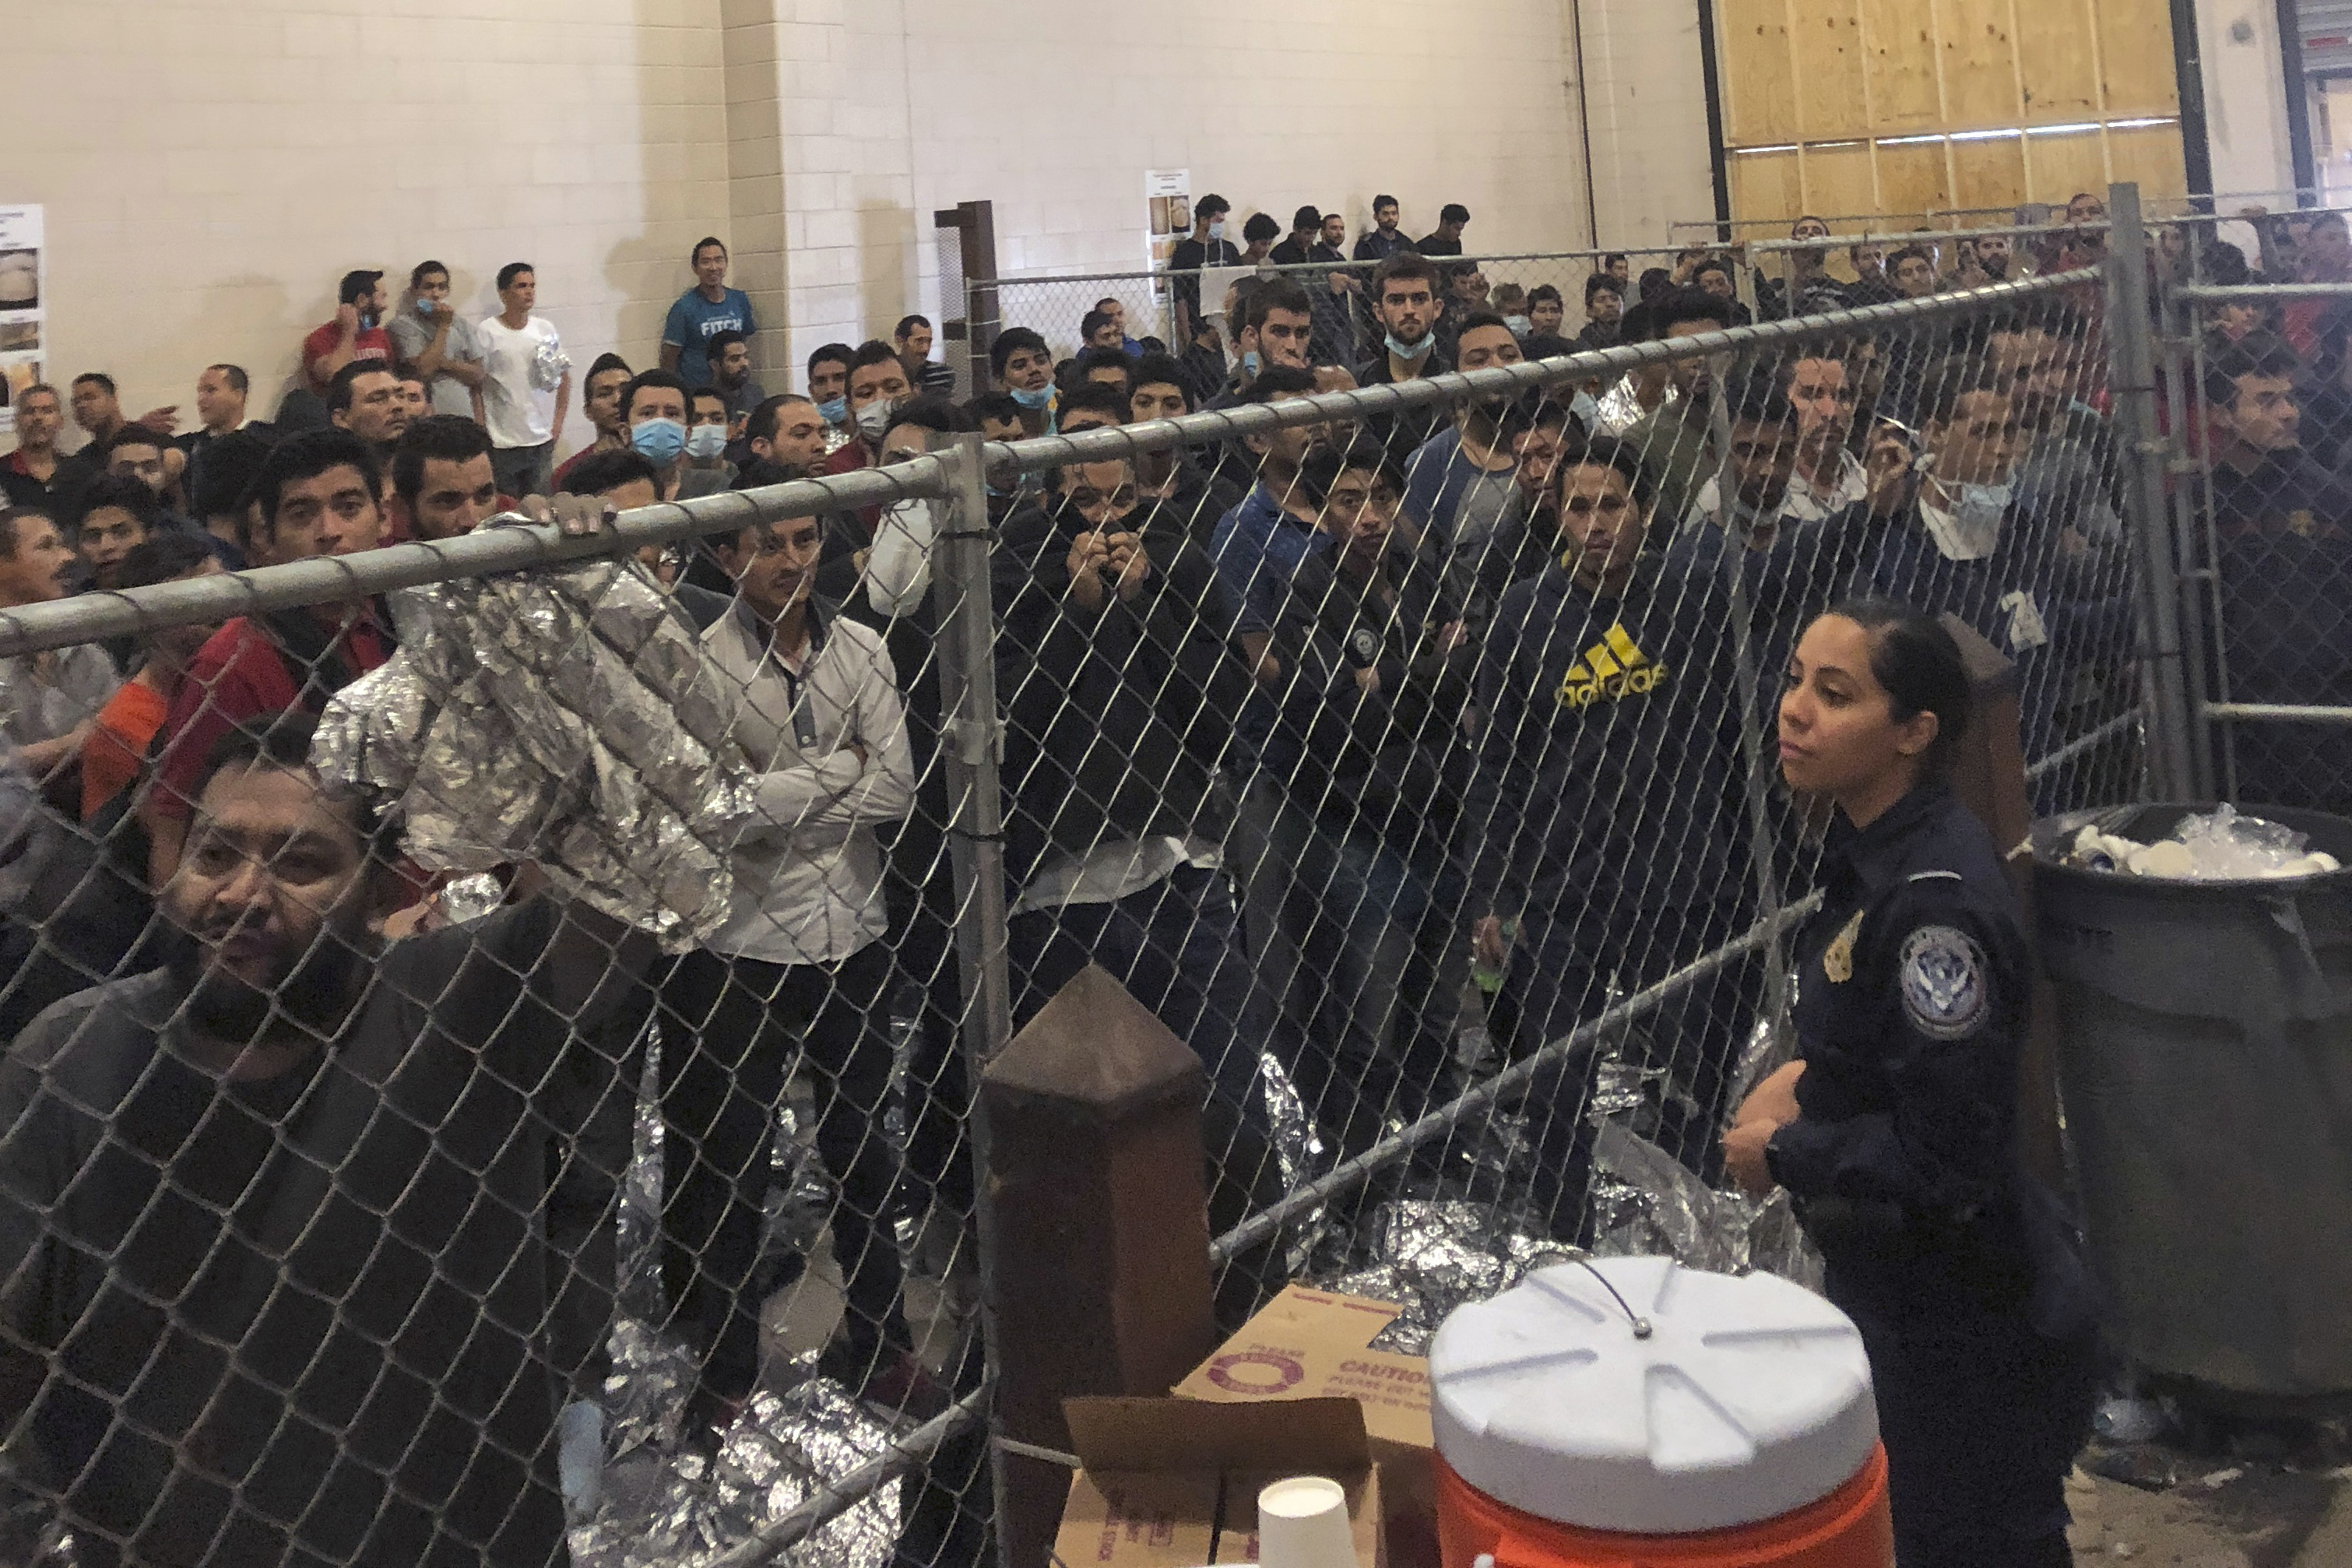 In this July 12, 2019 file photo, men stand in a U.S. Immigration and Border Enforcement detention center in McAllen, Texas, during a visit by Vice President Mike Pence. Immigration lawyers say a pattern has repeated itself for several weeks in migrant de